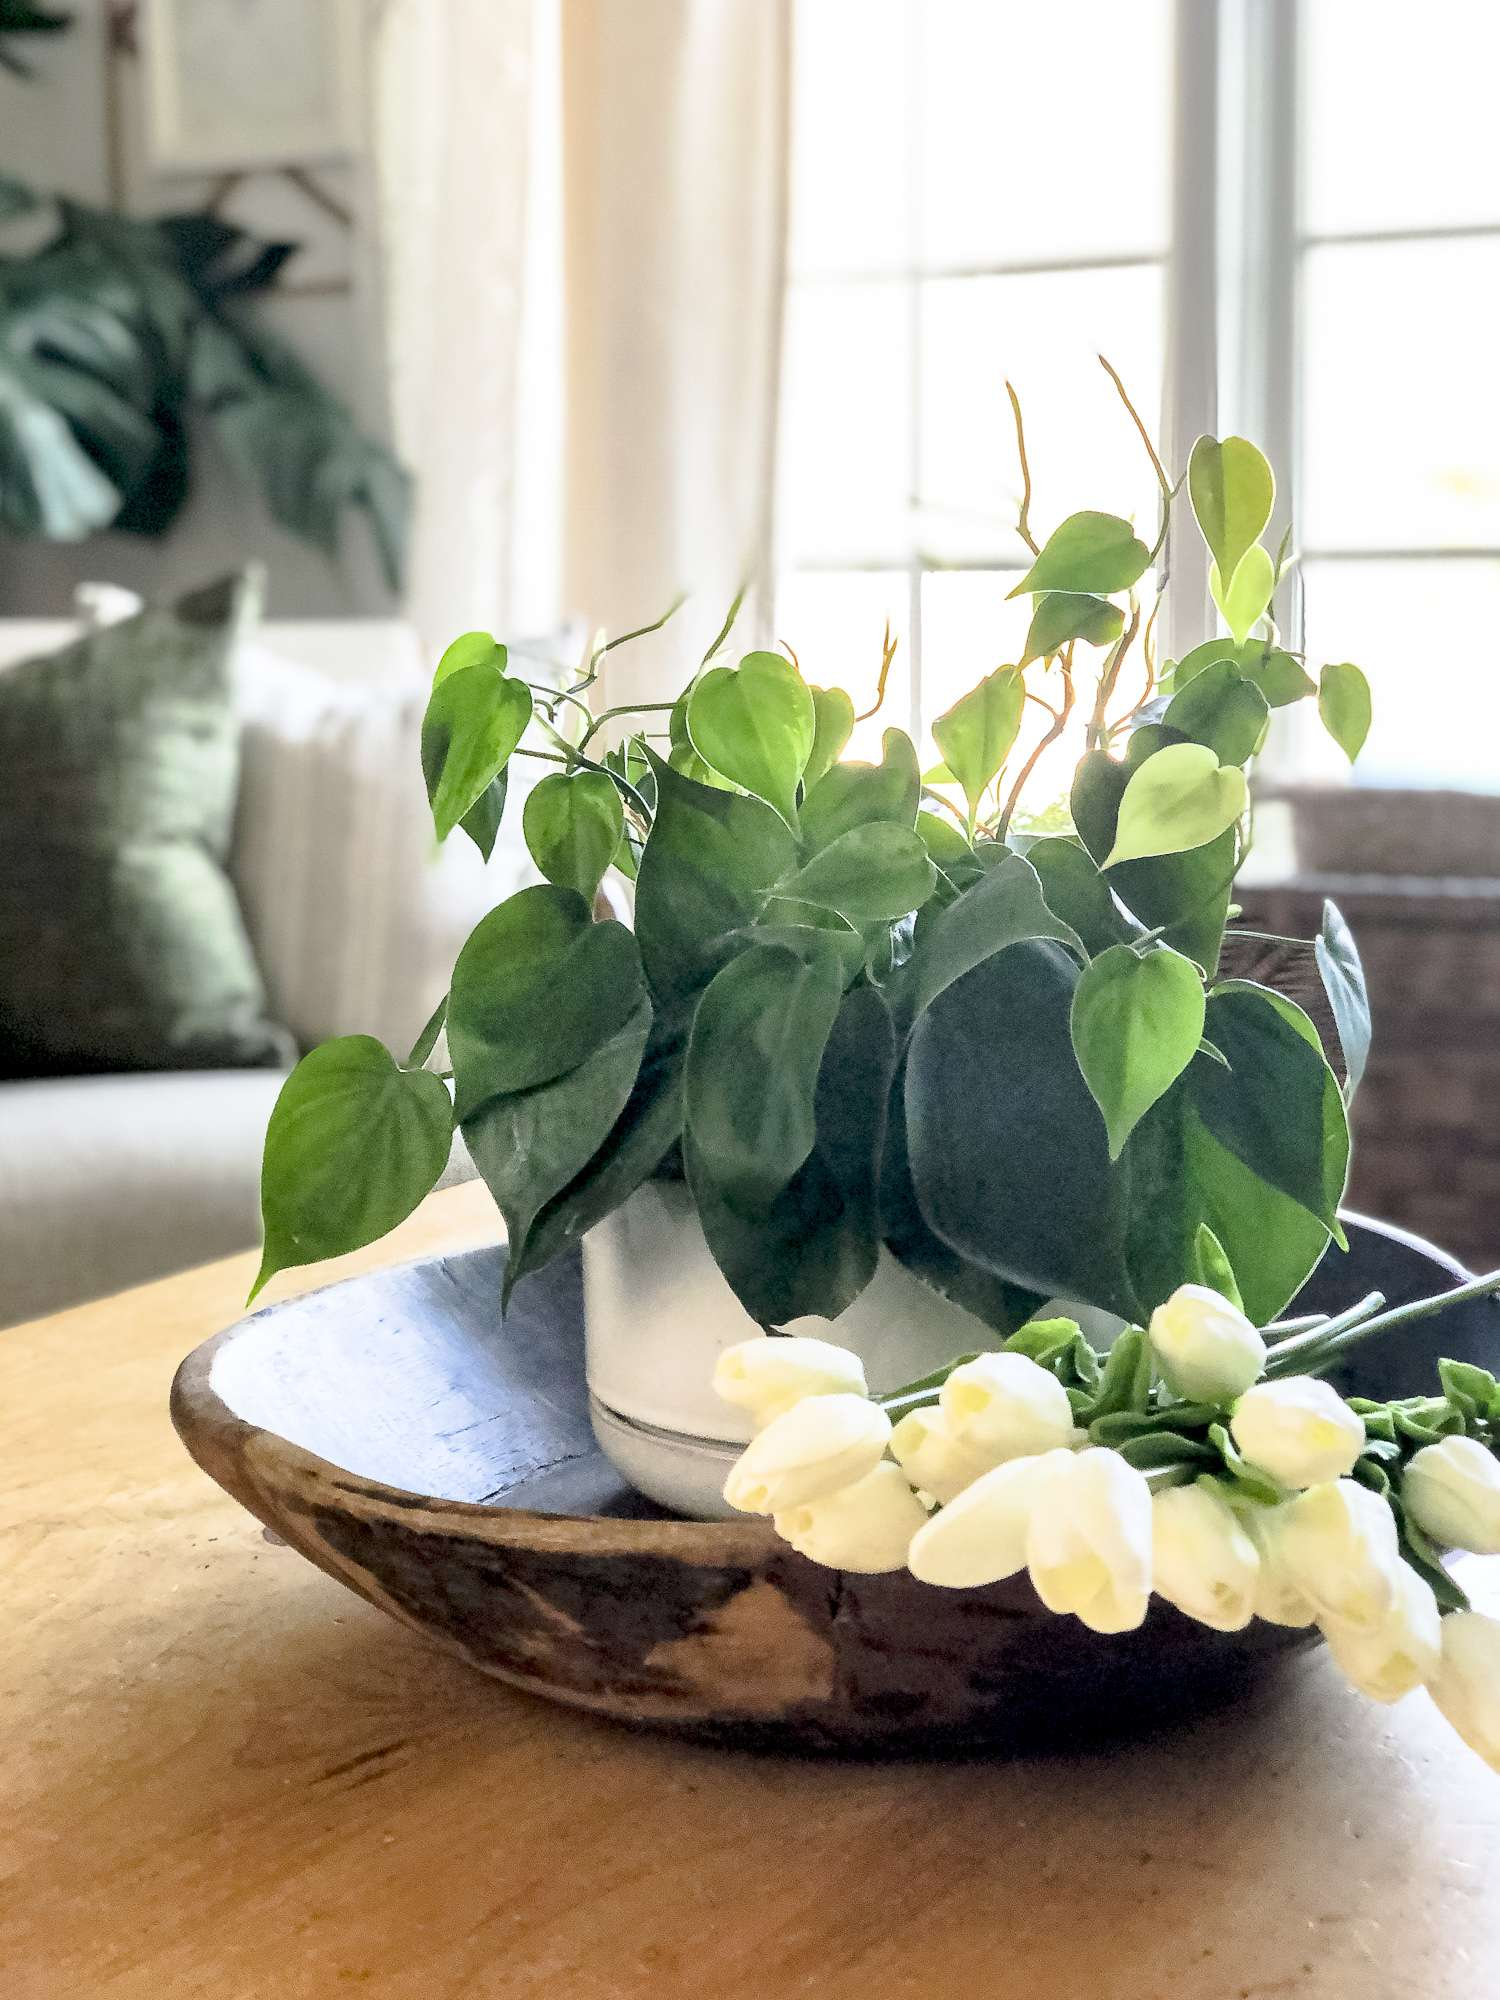 Pothos plant and tulips.